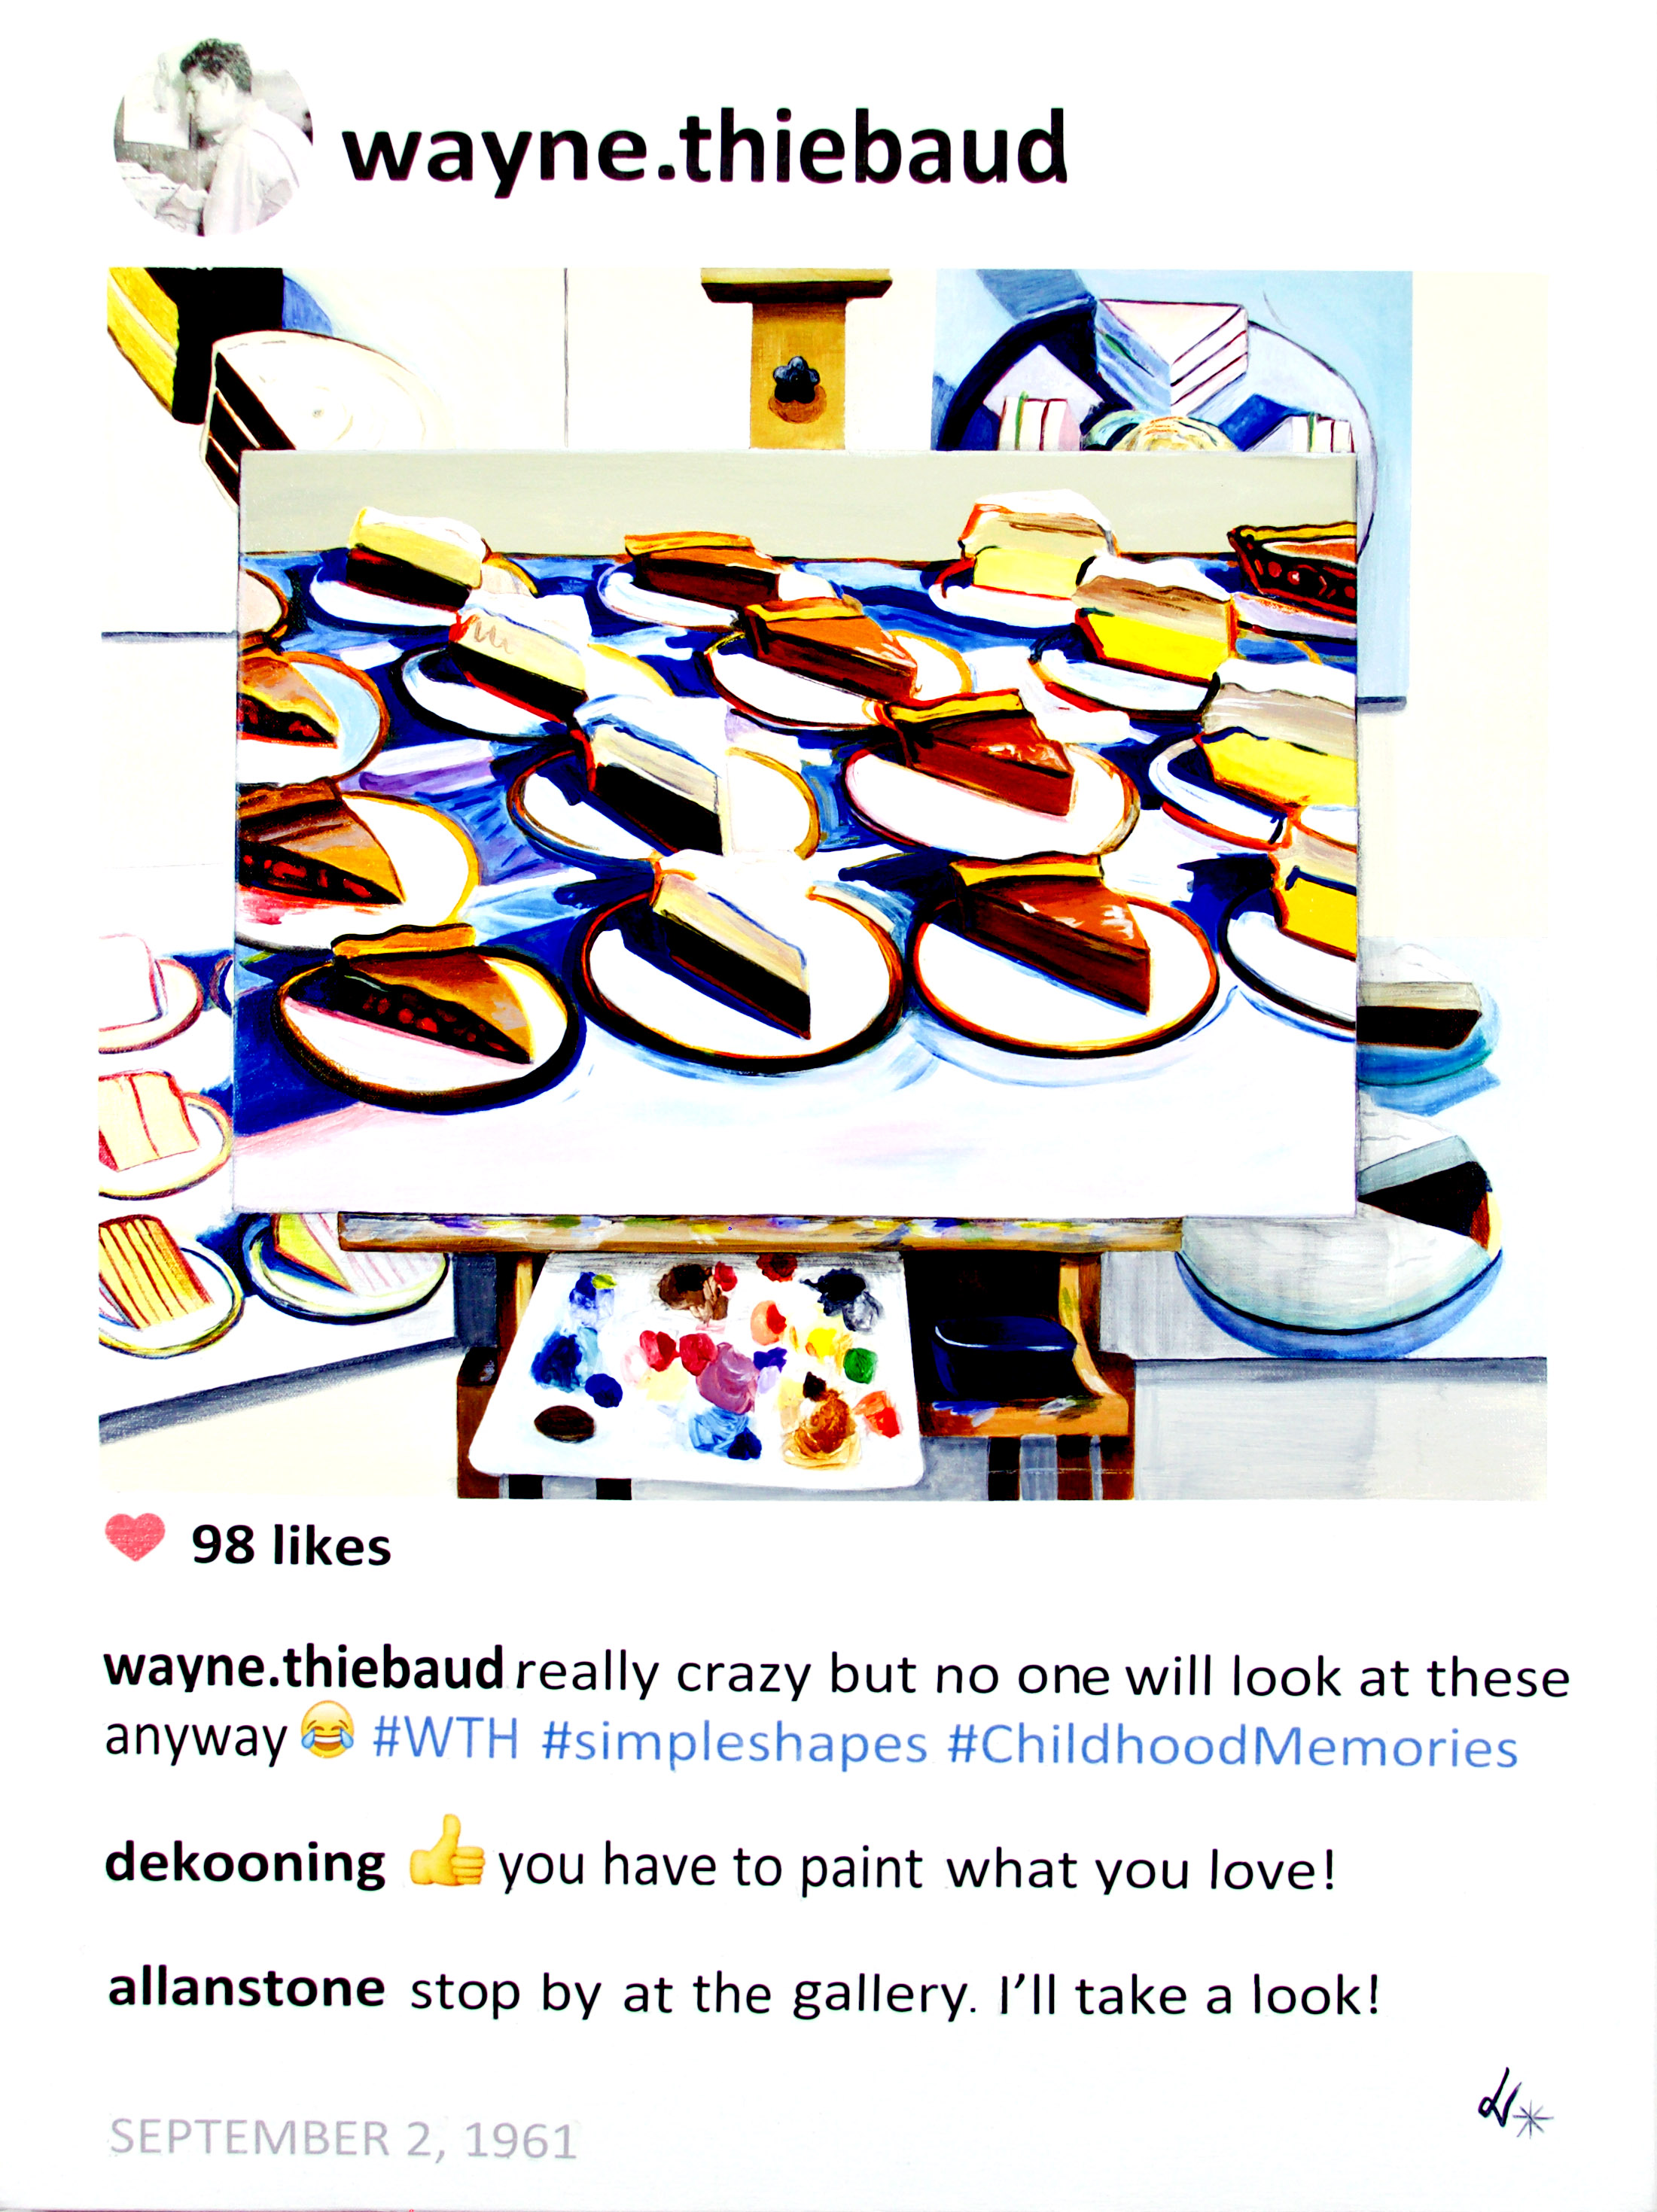 - #story.behind.the.artIn 1956, Wayne Thiebaud befriended Willem de Kooning who gave him a valuable advice: paint what you love.In 1961, Thiebaud created a series with cakes and thought nobody would be interested in them. Still, he went from California to NYC to present his work. He got rejected but the last gallery in which he stopped was the Allan Stone Gallery. Allan Stone was intrigued and gave him a show in the spring 1962 that sold out.Allan Stone remained his art dealer and friend until his passing in 2006.Sources: Wayne Thiebaud: A Paintings Retrospective by Steven A. Nash. Delicious: The Art and Life of Wayne Thiebaud by Susan Goldman RubinWayne's Cakes, 2017, Acrylic on canvas, 40 x 30 x 1.5